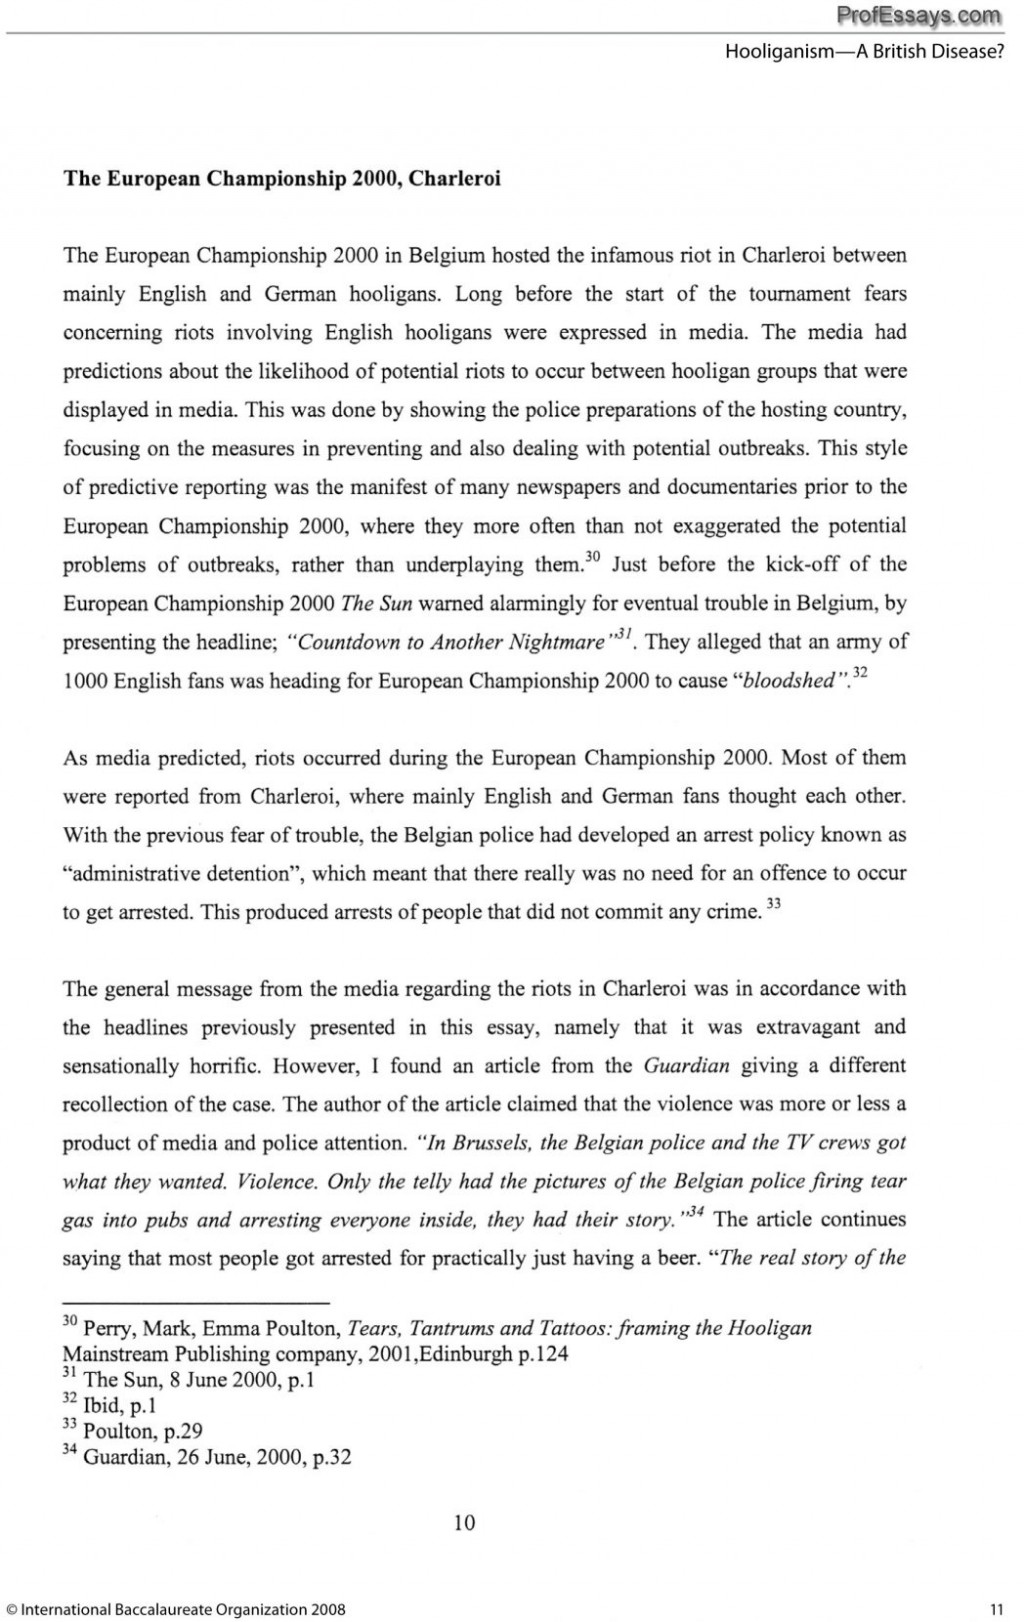 014 Essay Example Book English Importance Of Persuasive Examples Pdf Ib Extended Free S Writing Argumentative Opinion Process Sat Exemplification Narrative Classification 1048x1661 Impressive Reflective Conclusion Report Sample Large